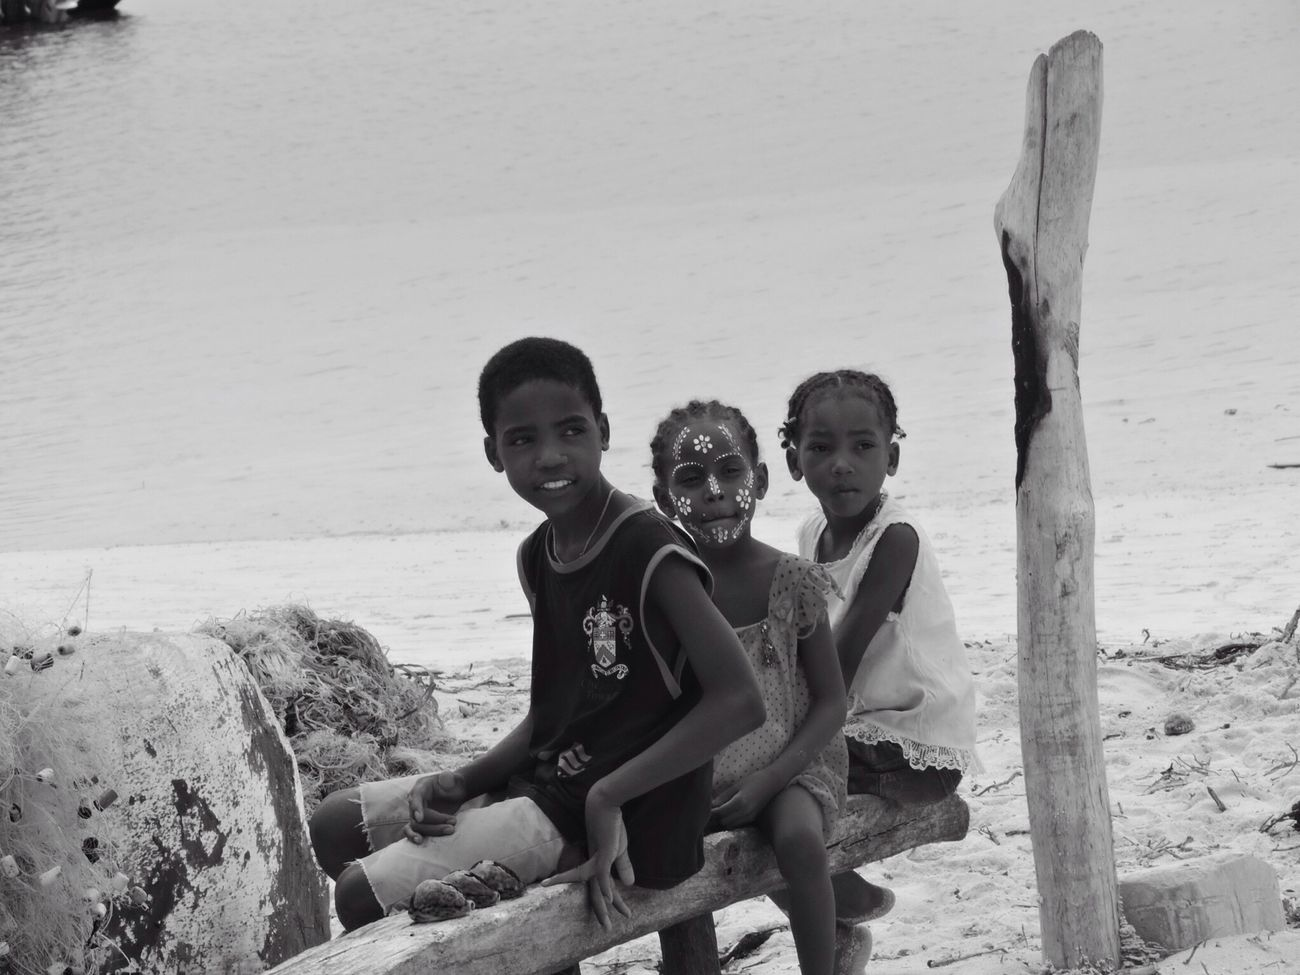 Children are smillons, in Madagascar 🎈 Madagascar  Children Blackandwhite Taking Photos Enjoying Life